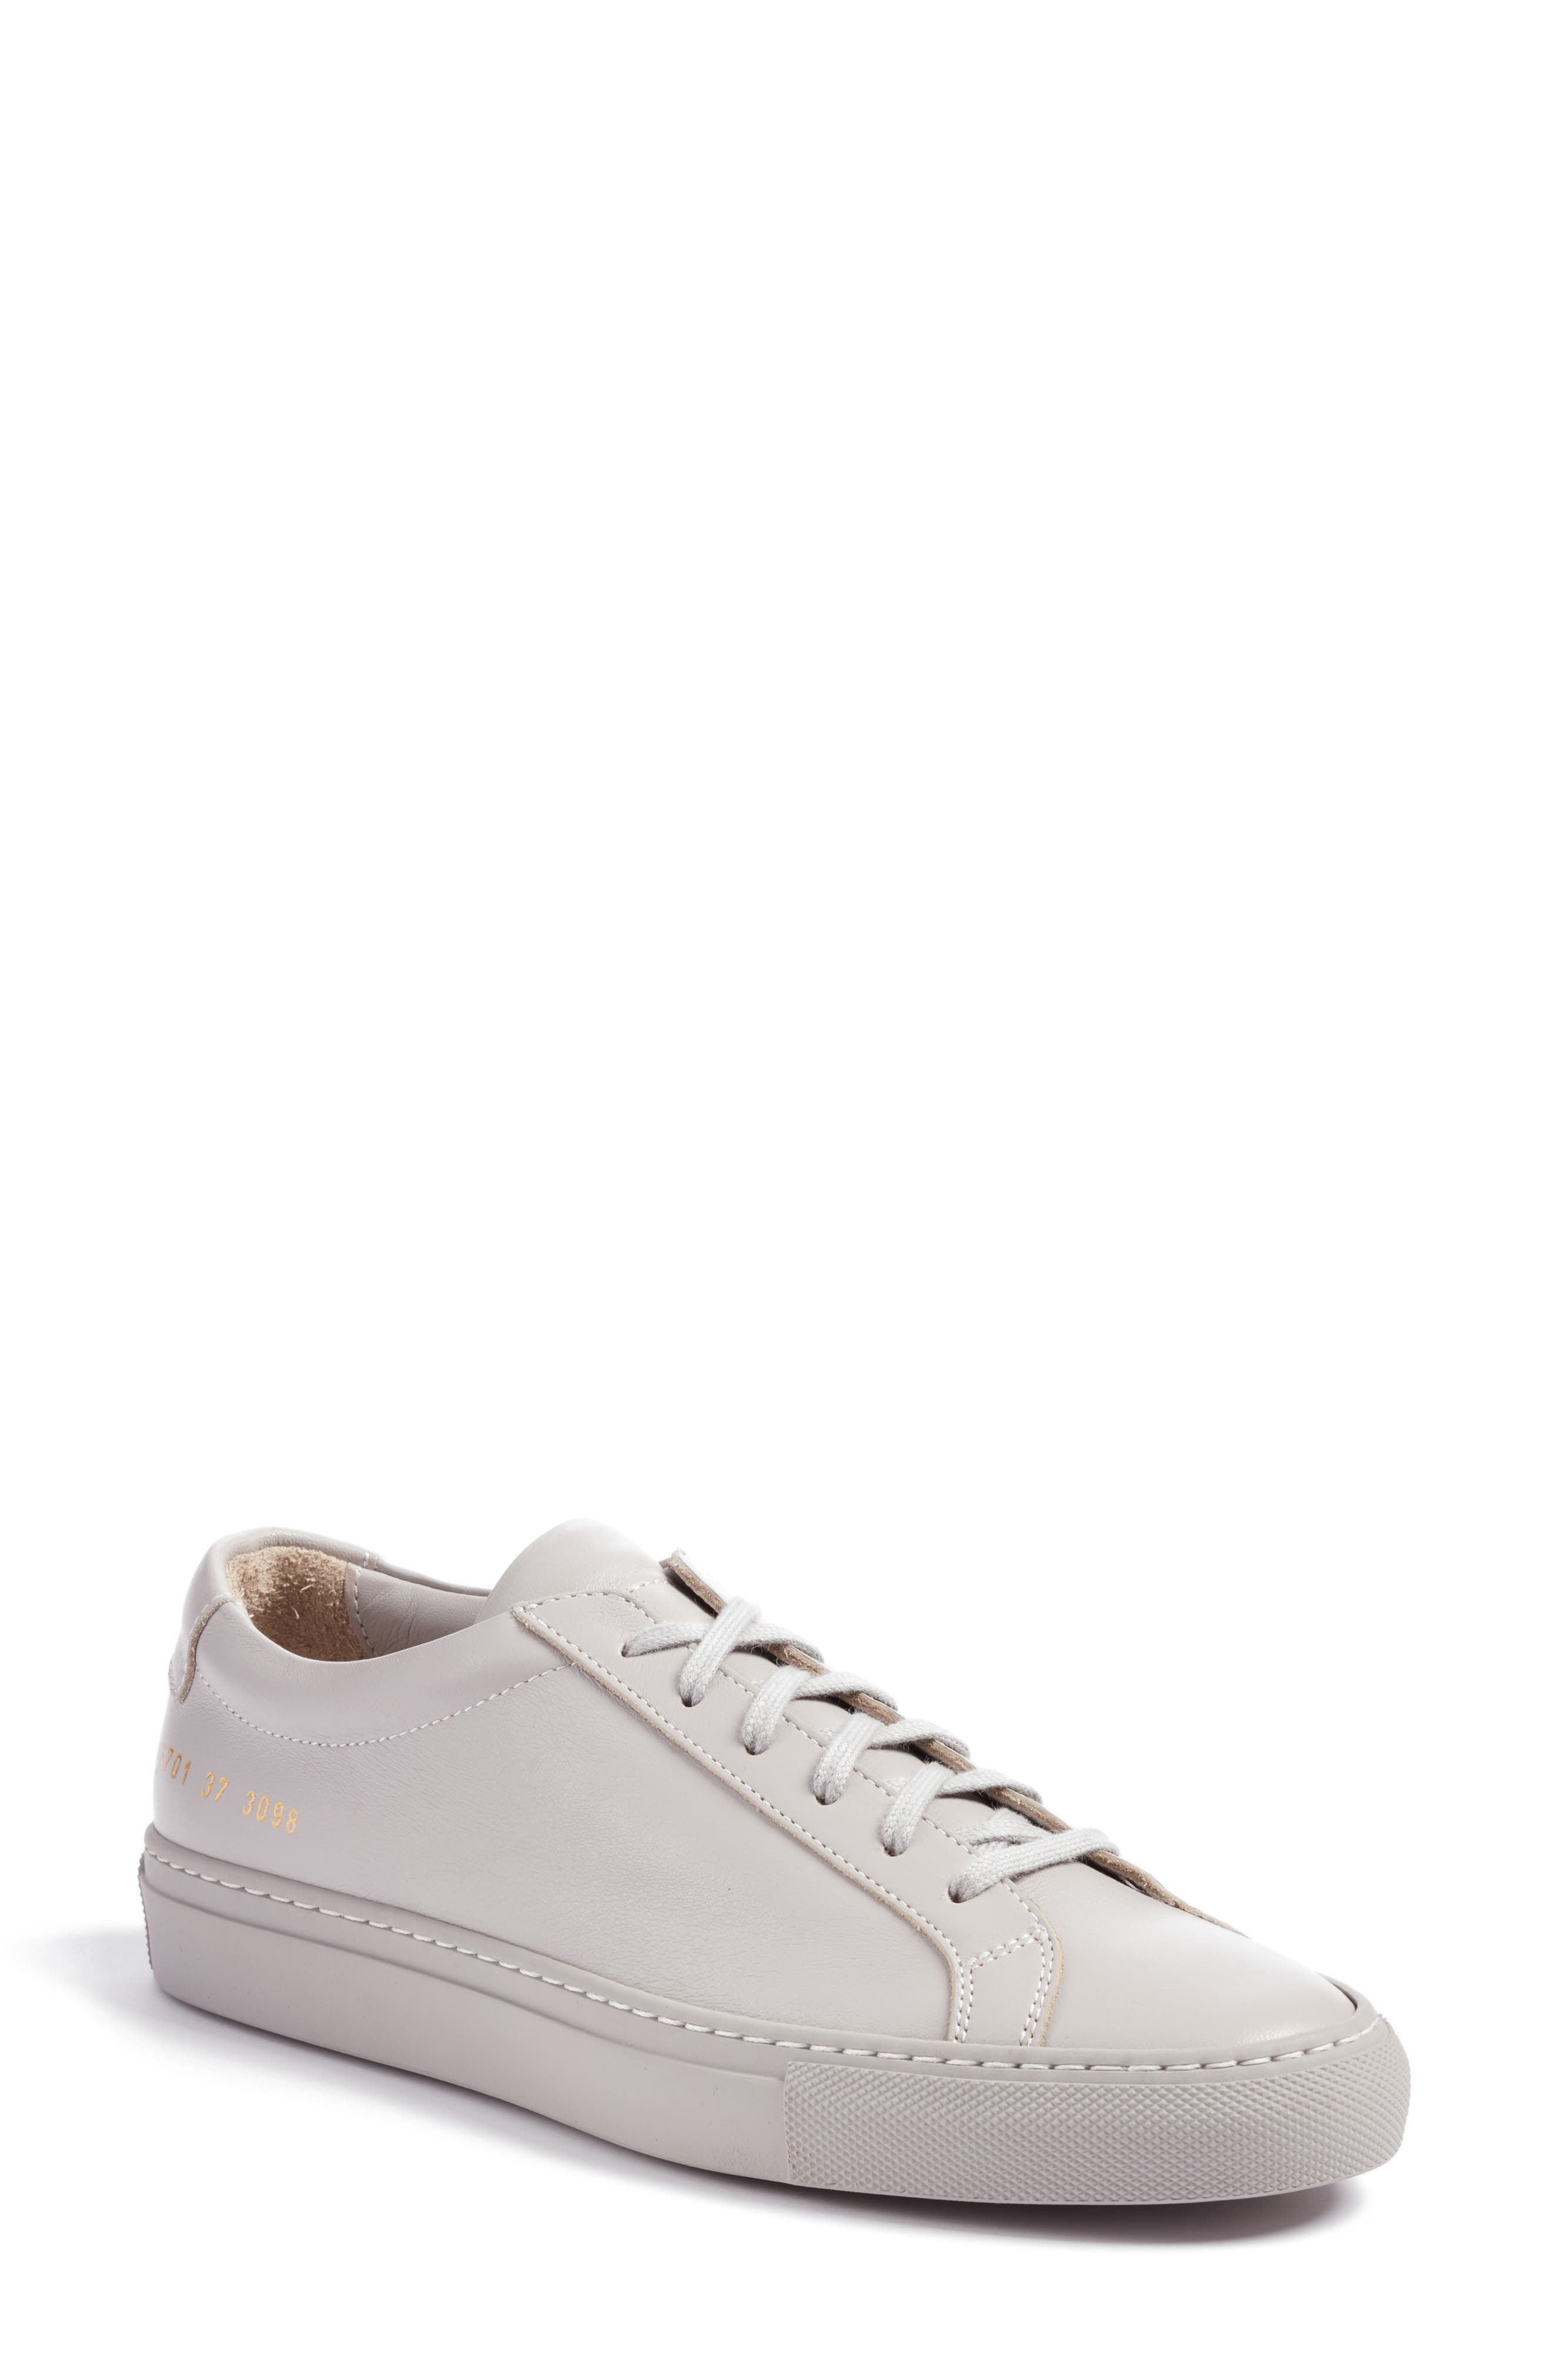 Common Projects Original Achilles Sneaker (Women)